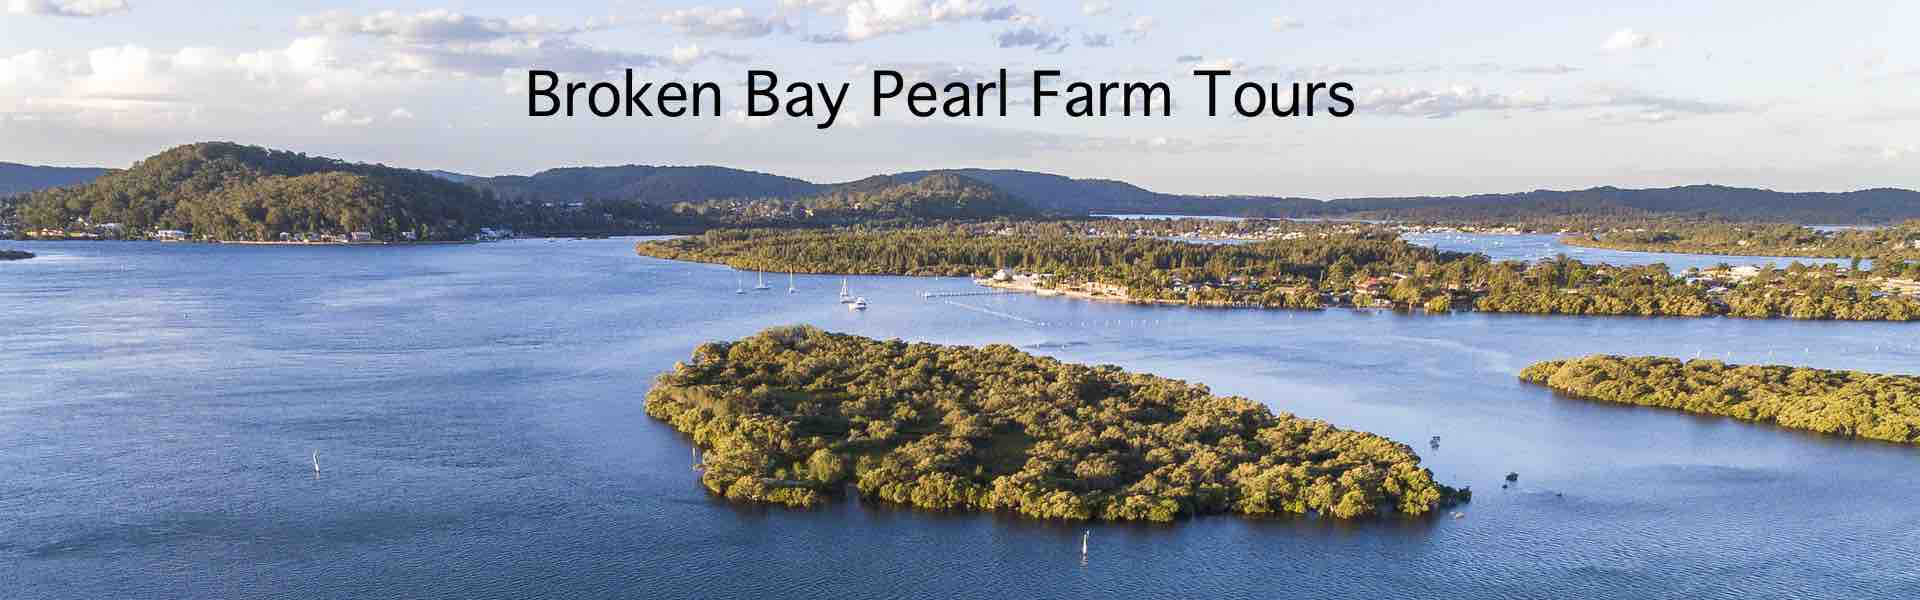 broken bay pearl farm tours